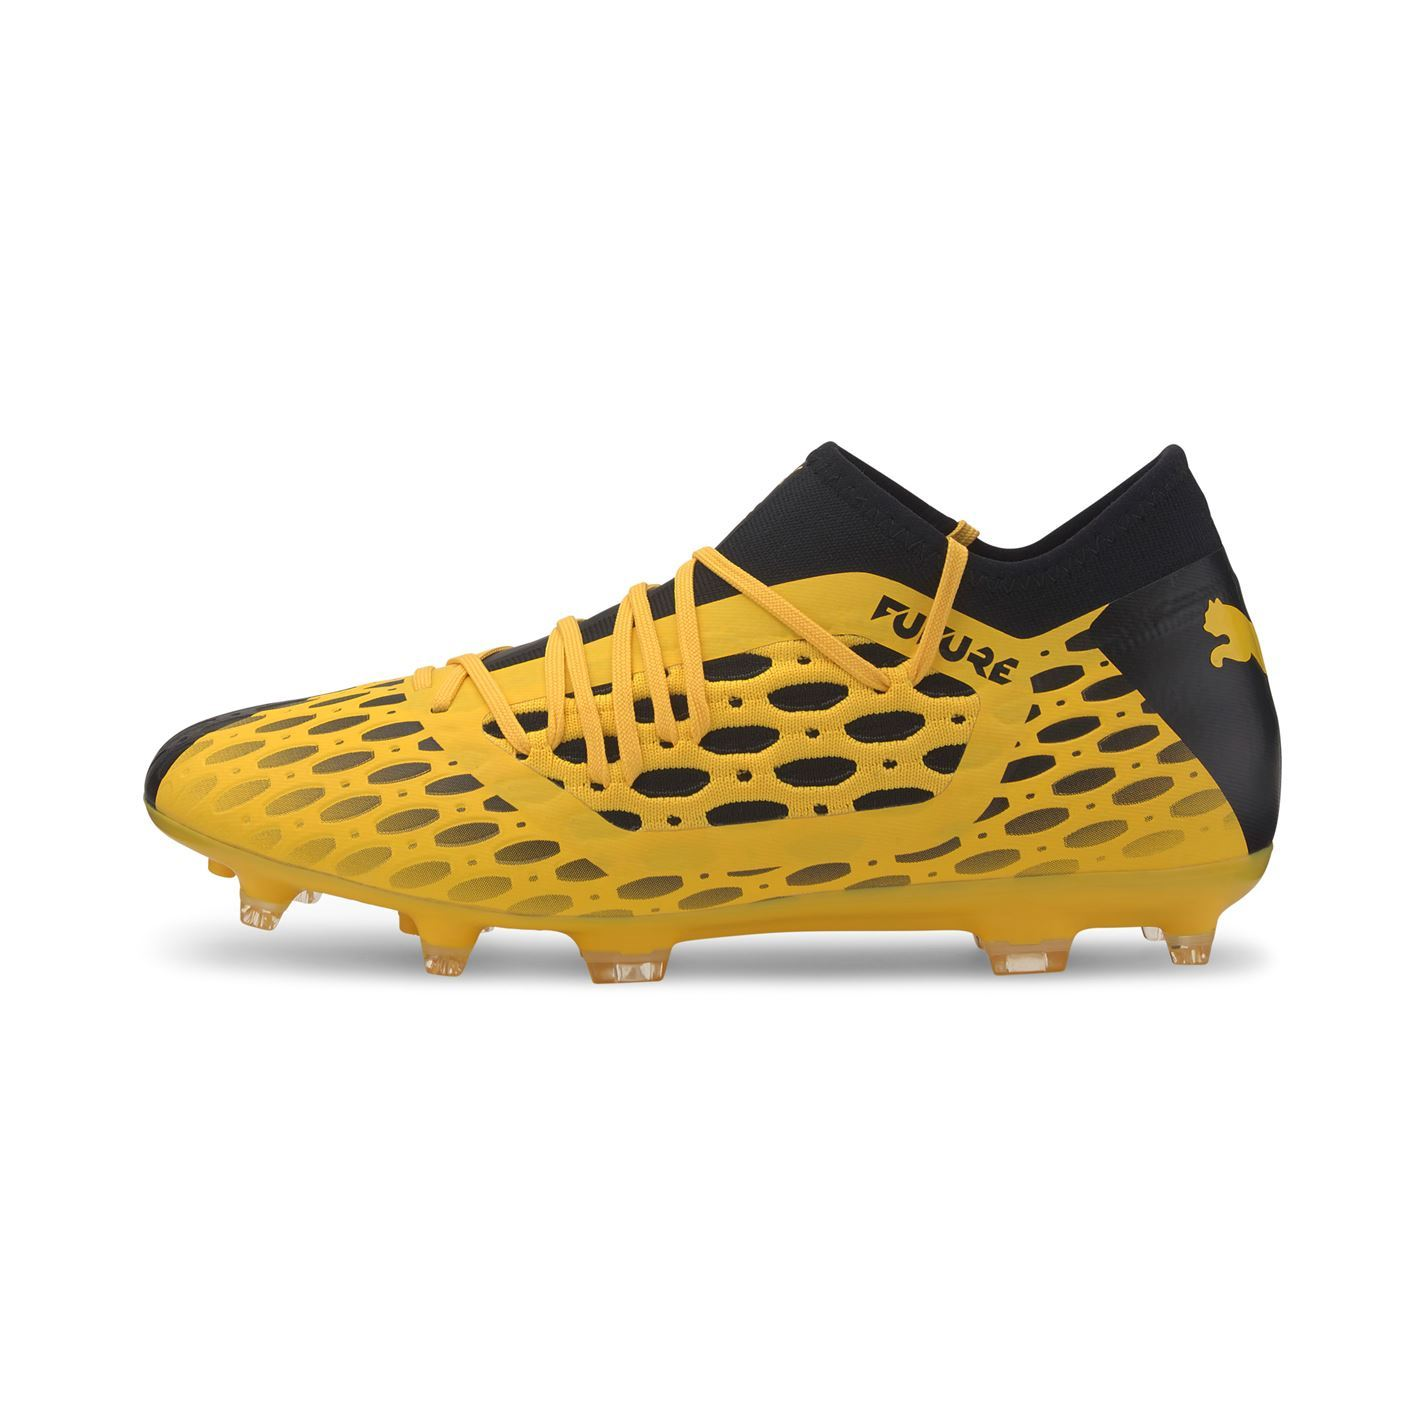 miniature 3 - Puma Future 5.3 Homme FG Firm Ground Chaussures De Football Chaussures de Foot Crampons Baskets